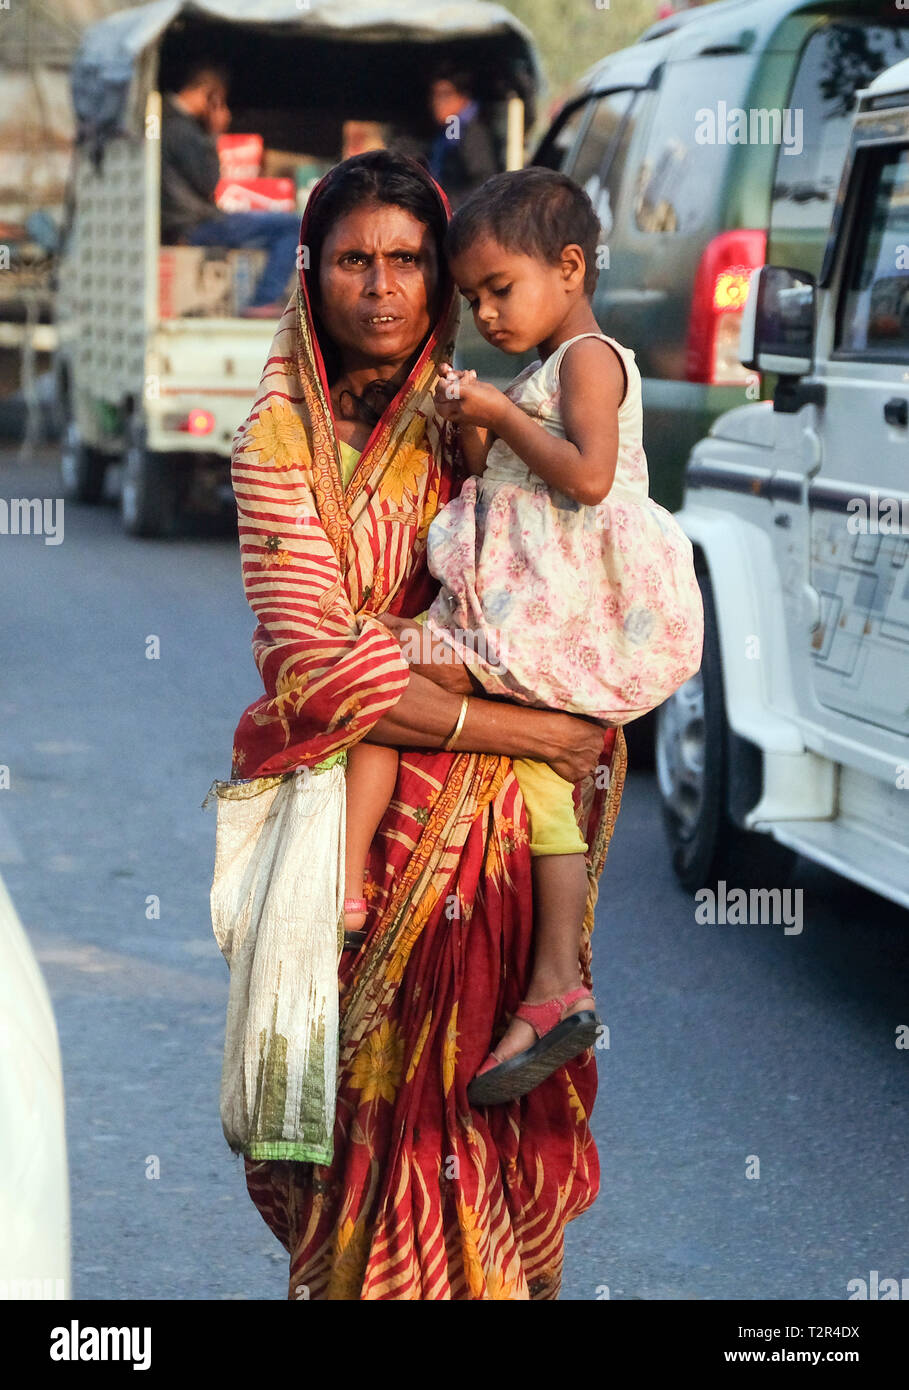 Beggar woman with her child between cars on a street in Guwahati, Assam state, India  ---   Bettlerin mit ihrem Kind zwischen Autos auf einer Straße in Guwahati, Bundesstaat Assam, Indien - Stock Image